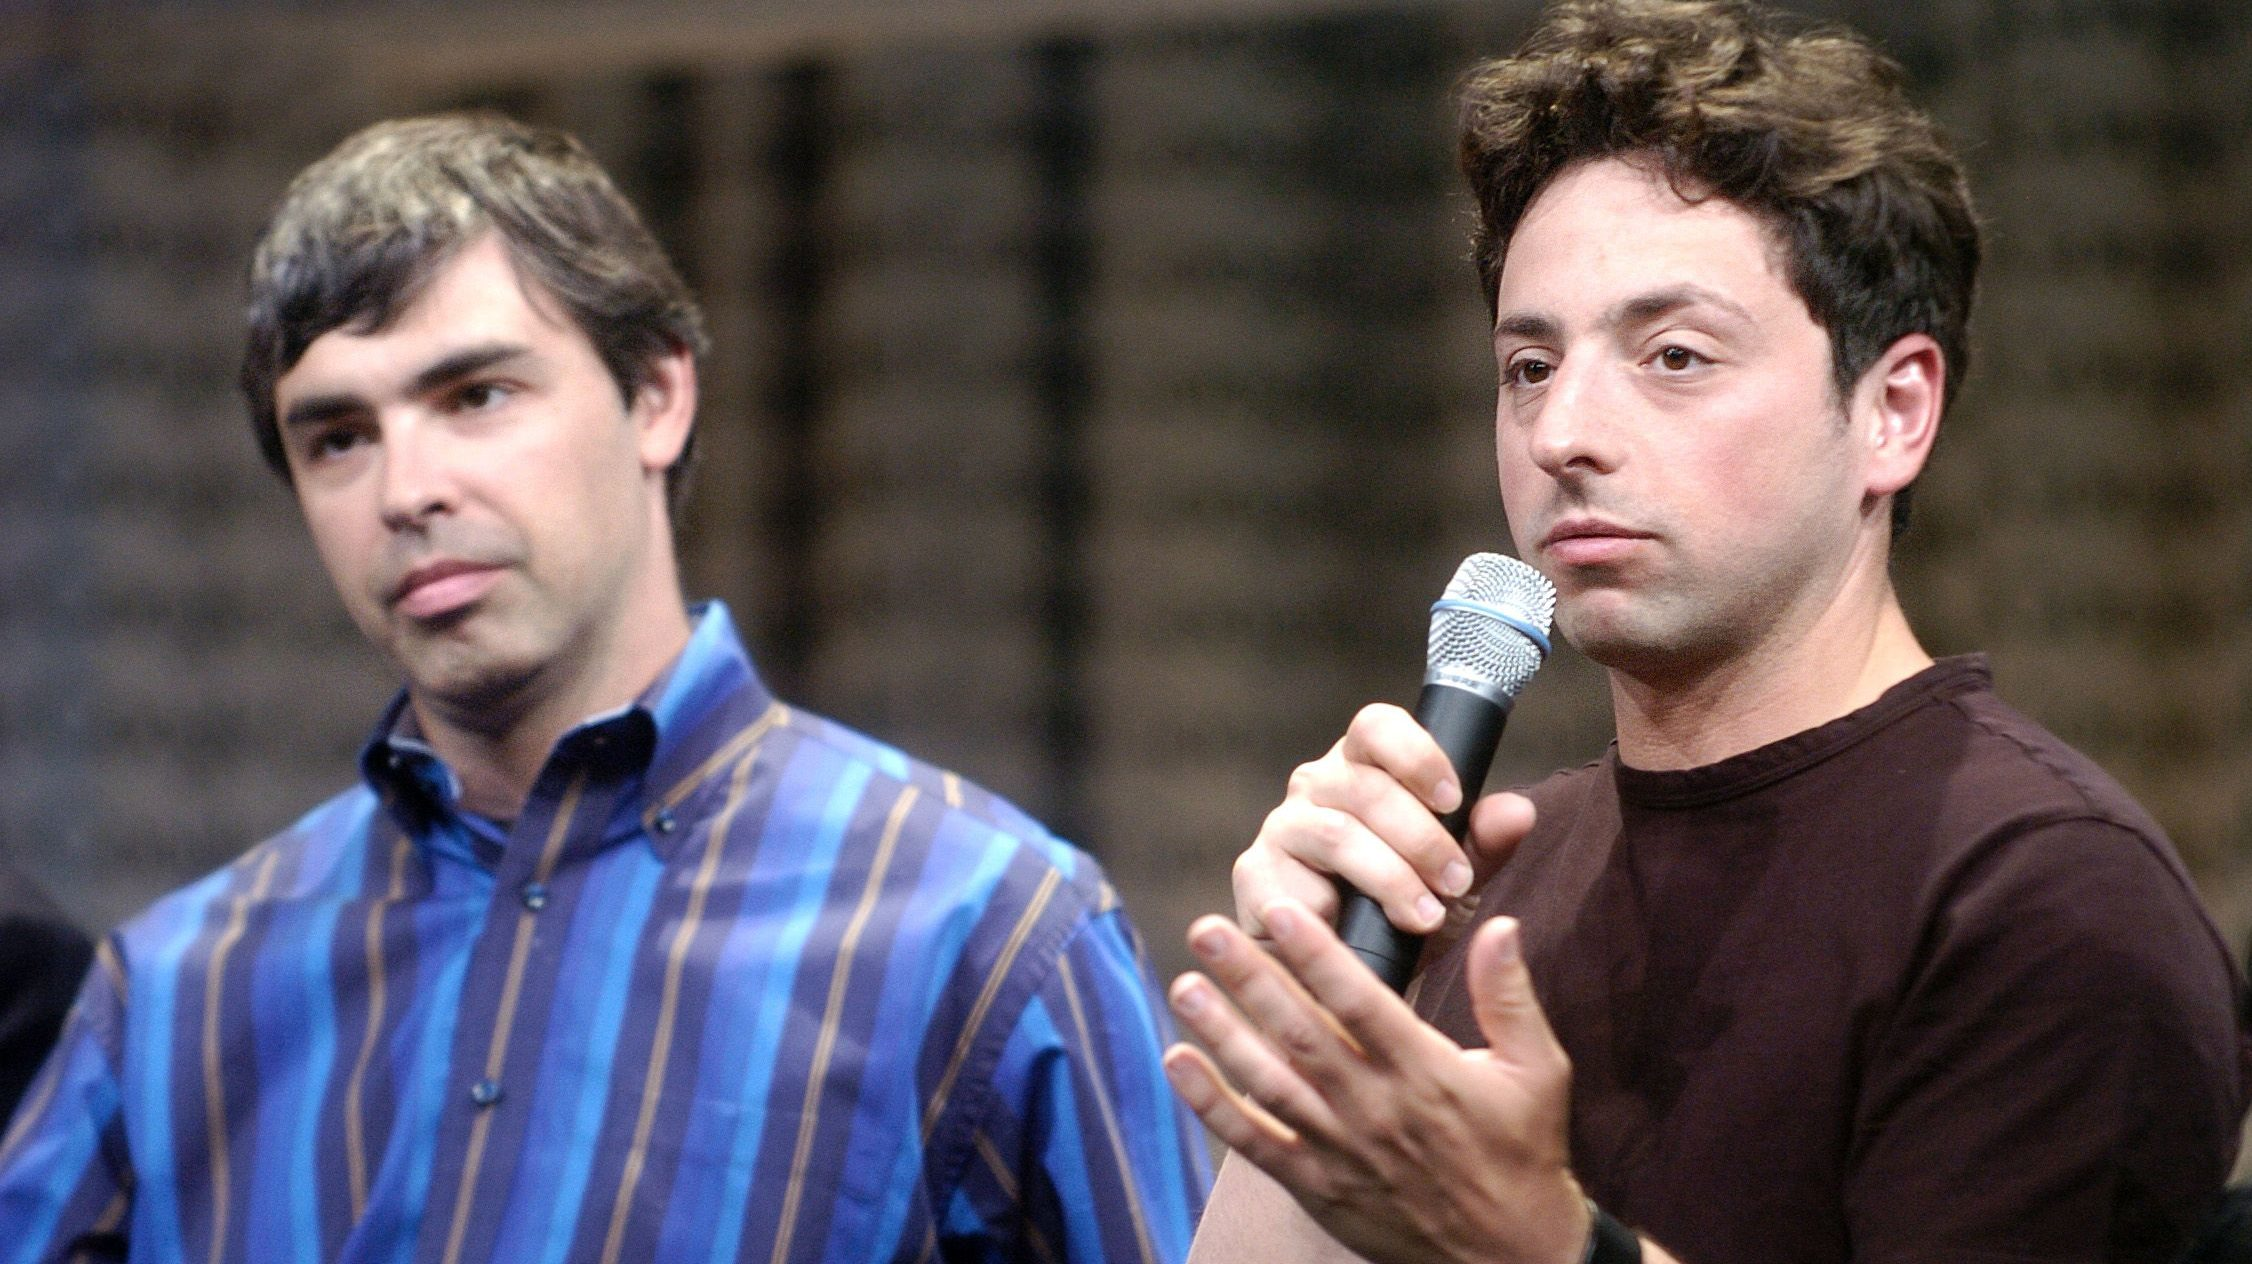 Google co-founders Sergey Brin (right) and Larry Page, circa 2007.